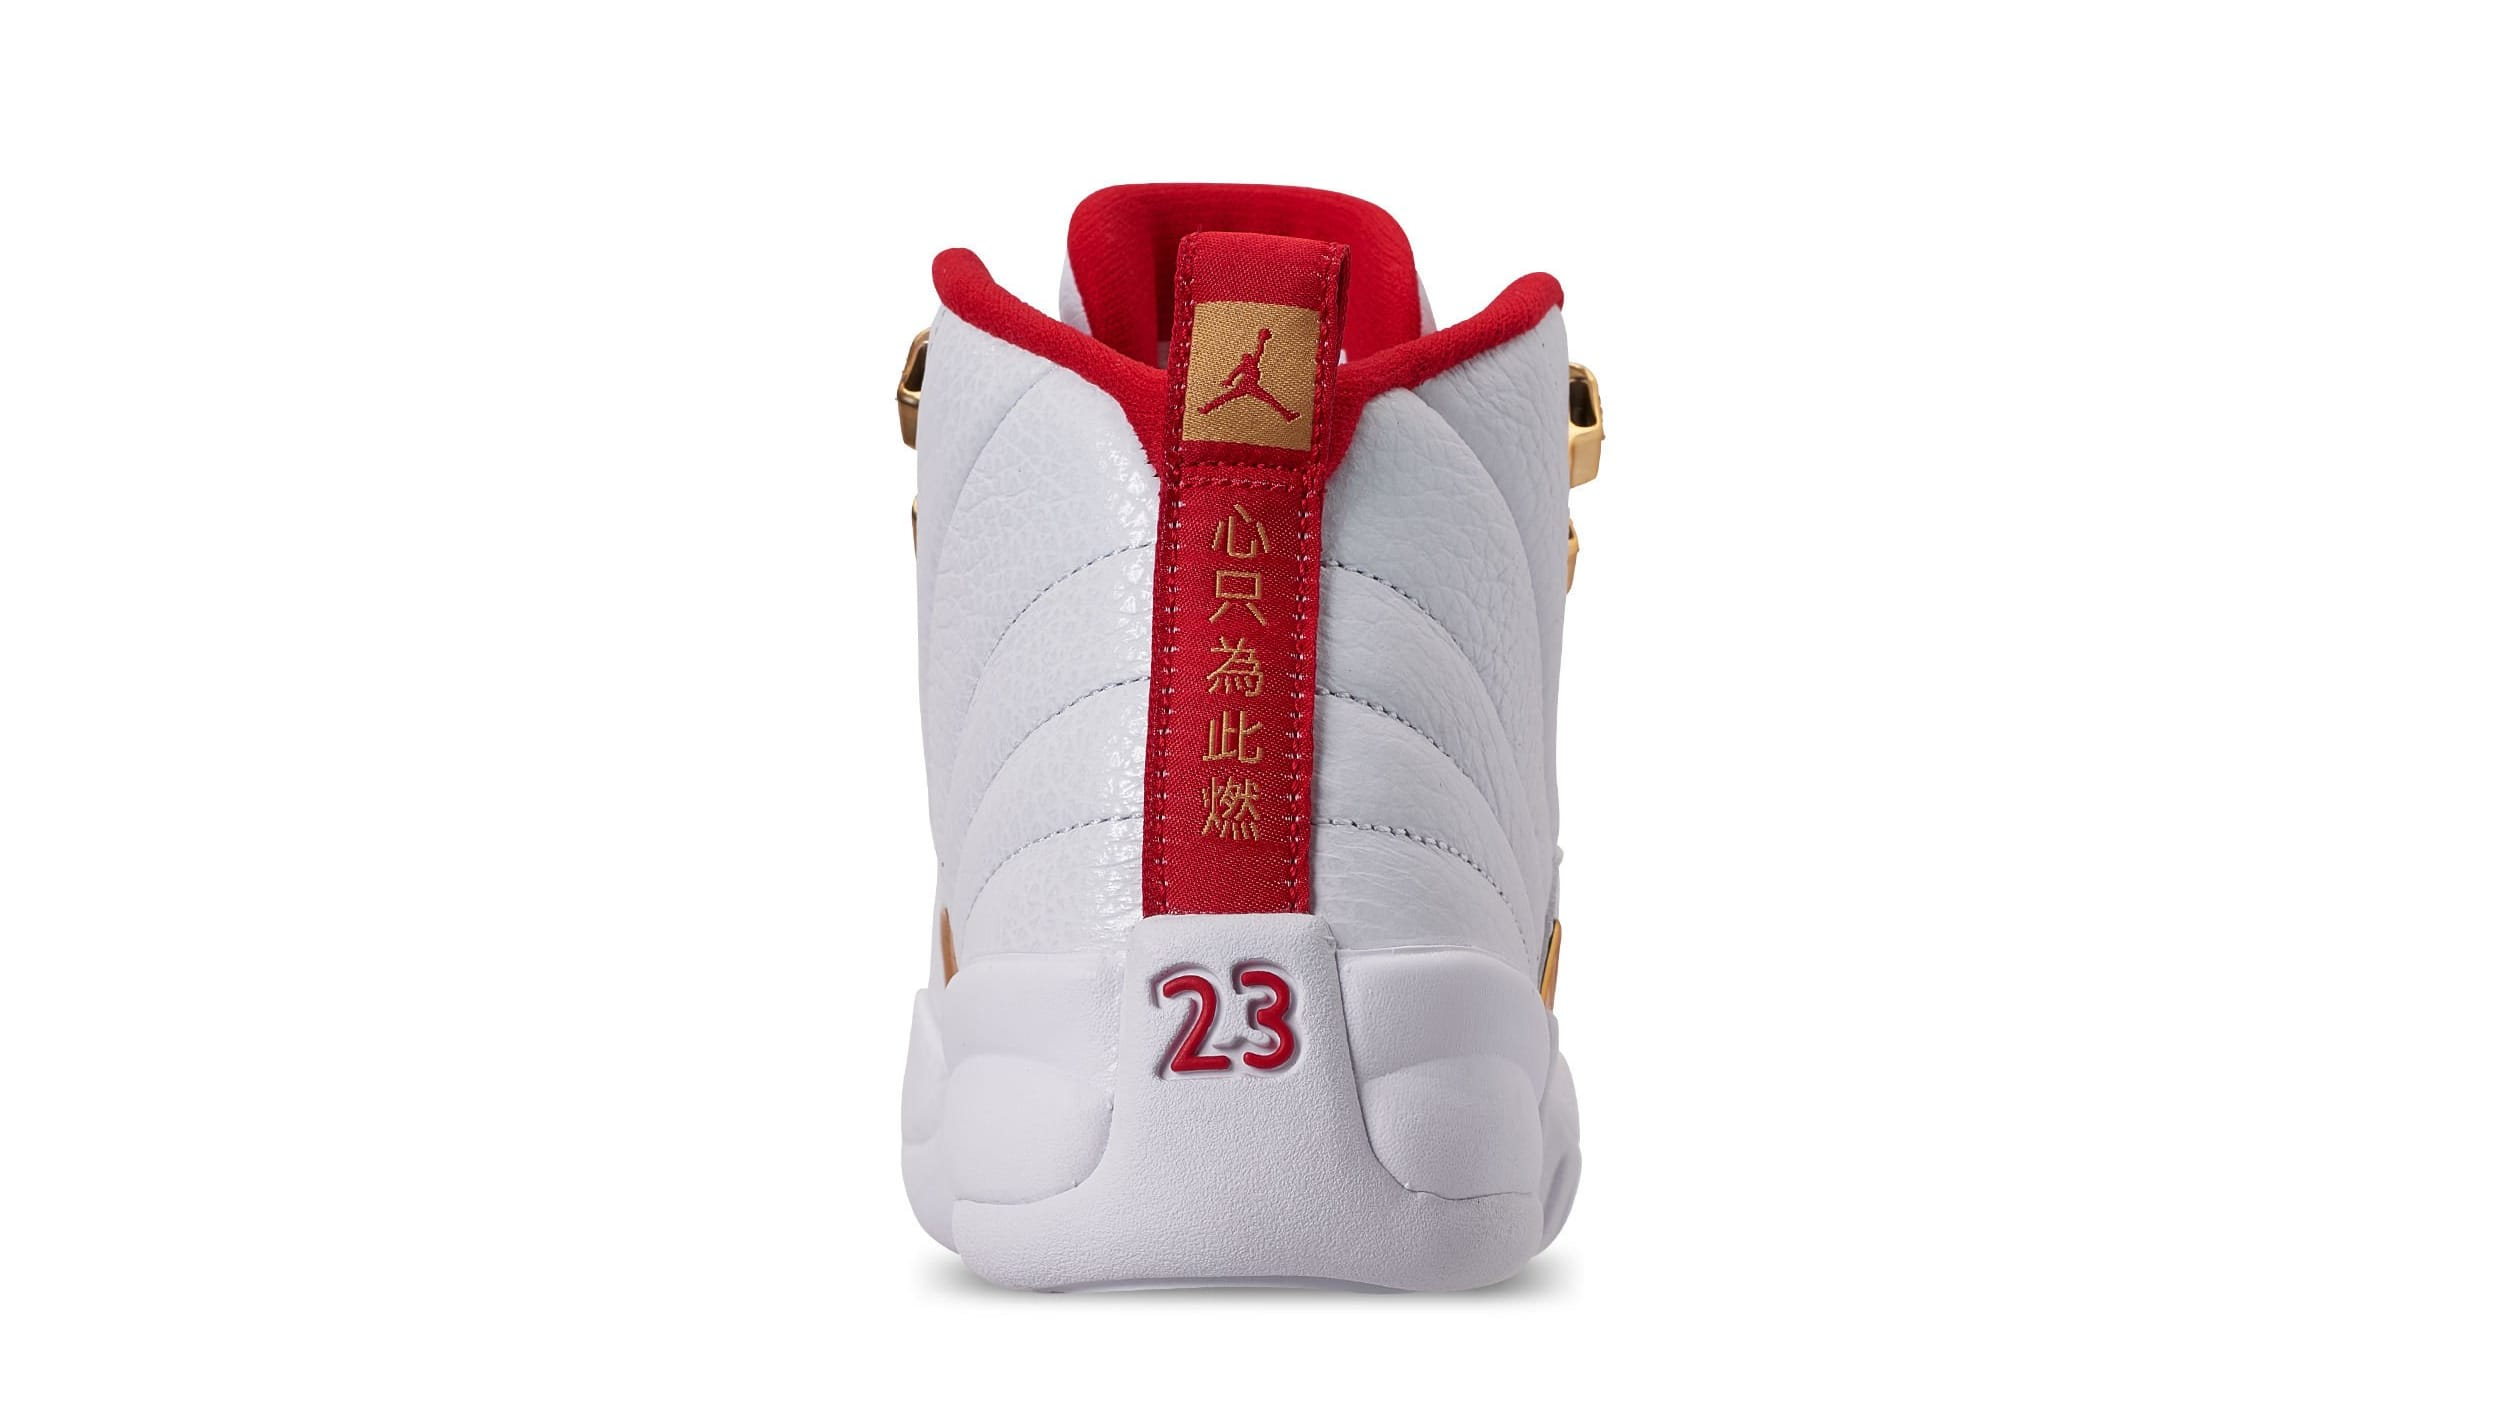 Air Jordan 12 Retro 'FIBA' White/University Red/Metallic Gold 130690-107 (Heel)